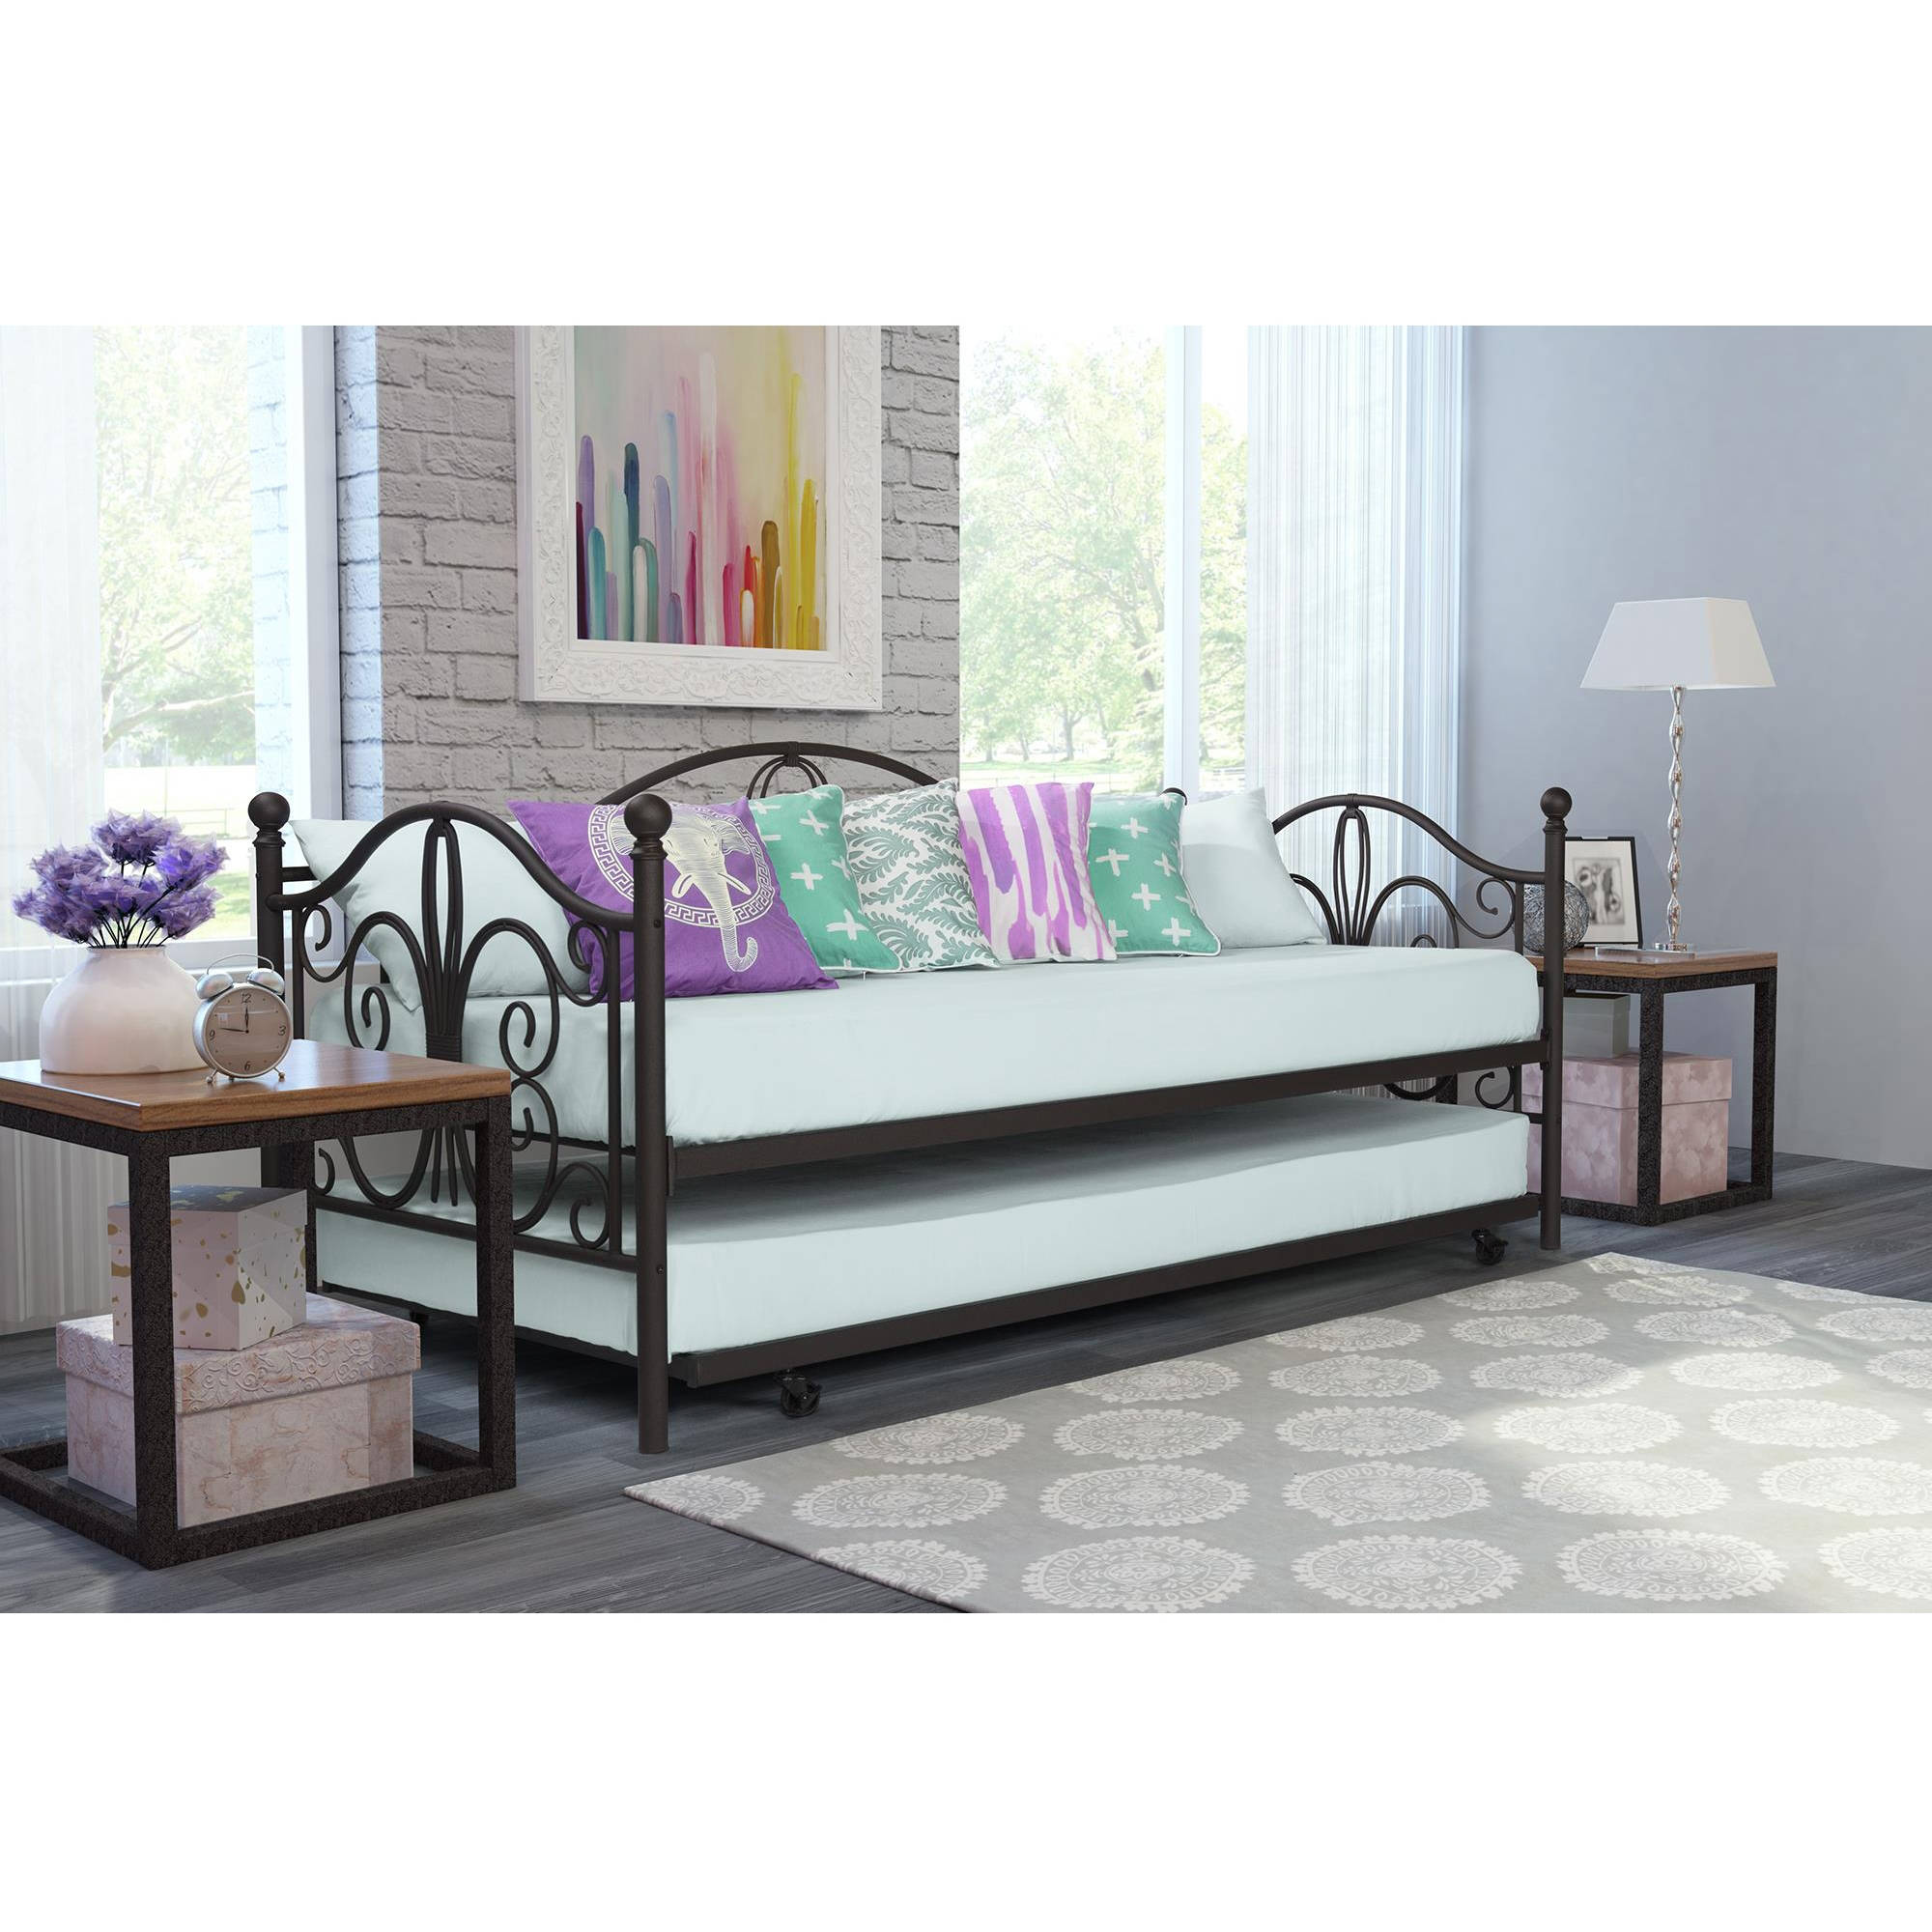 Dorel Home Bombay Metal Day Bed and Trundle, Bronze by